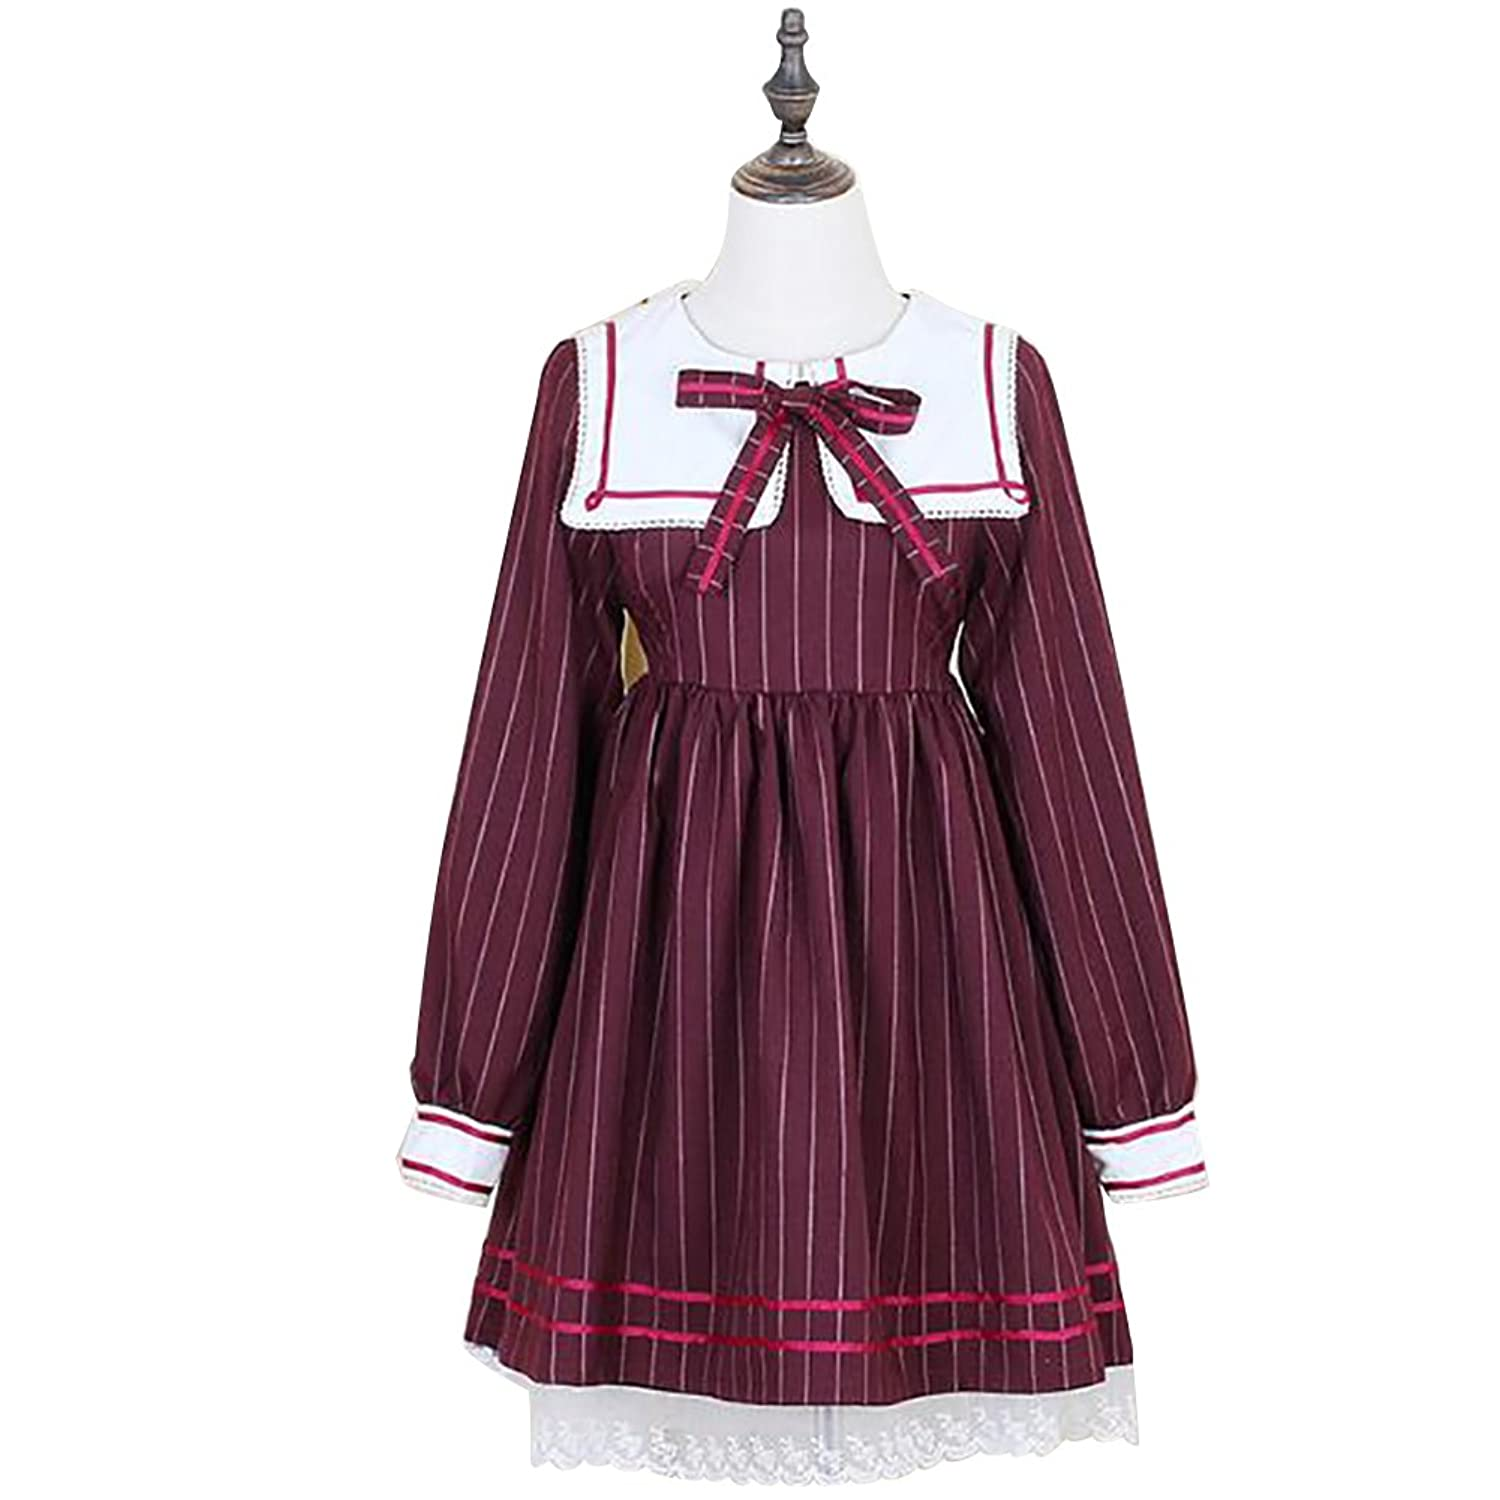 Vintage Style Children's Clothing: Girls, Boys, Baby, Toddler Japanese Harajuku School Girl Uniform Sailor Collar Striped Lolita Cosplay Dress $32.90 AT vintagedancer.com